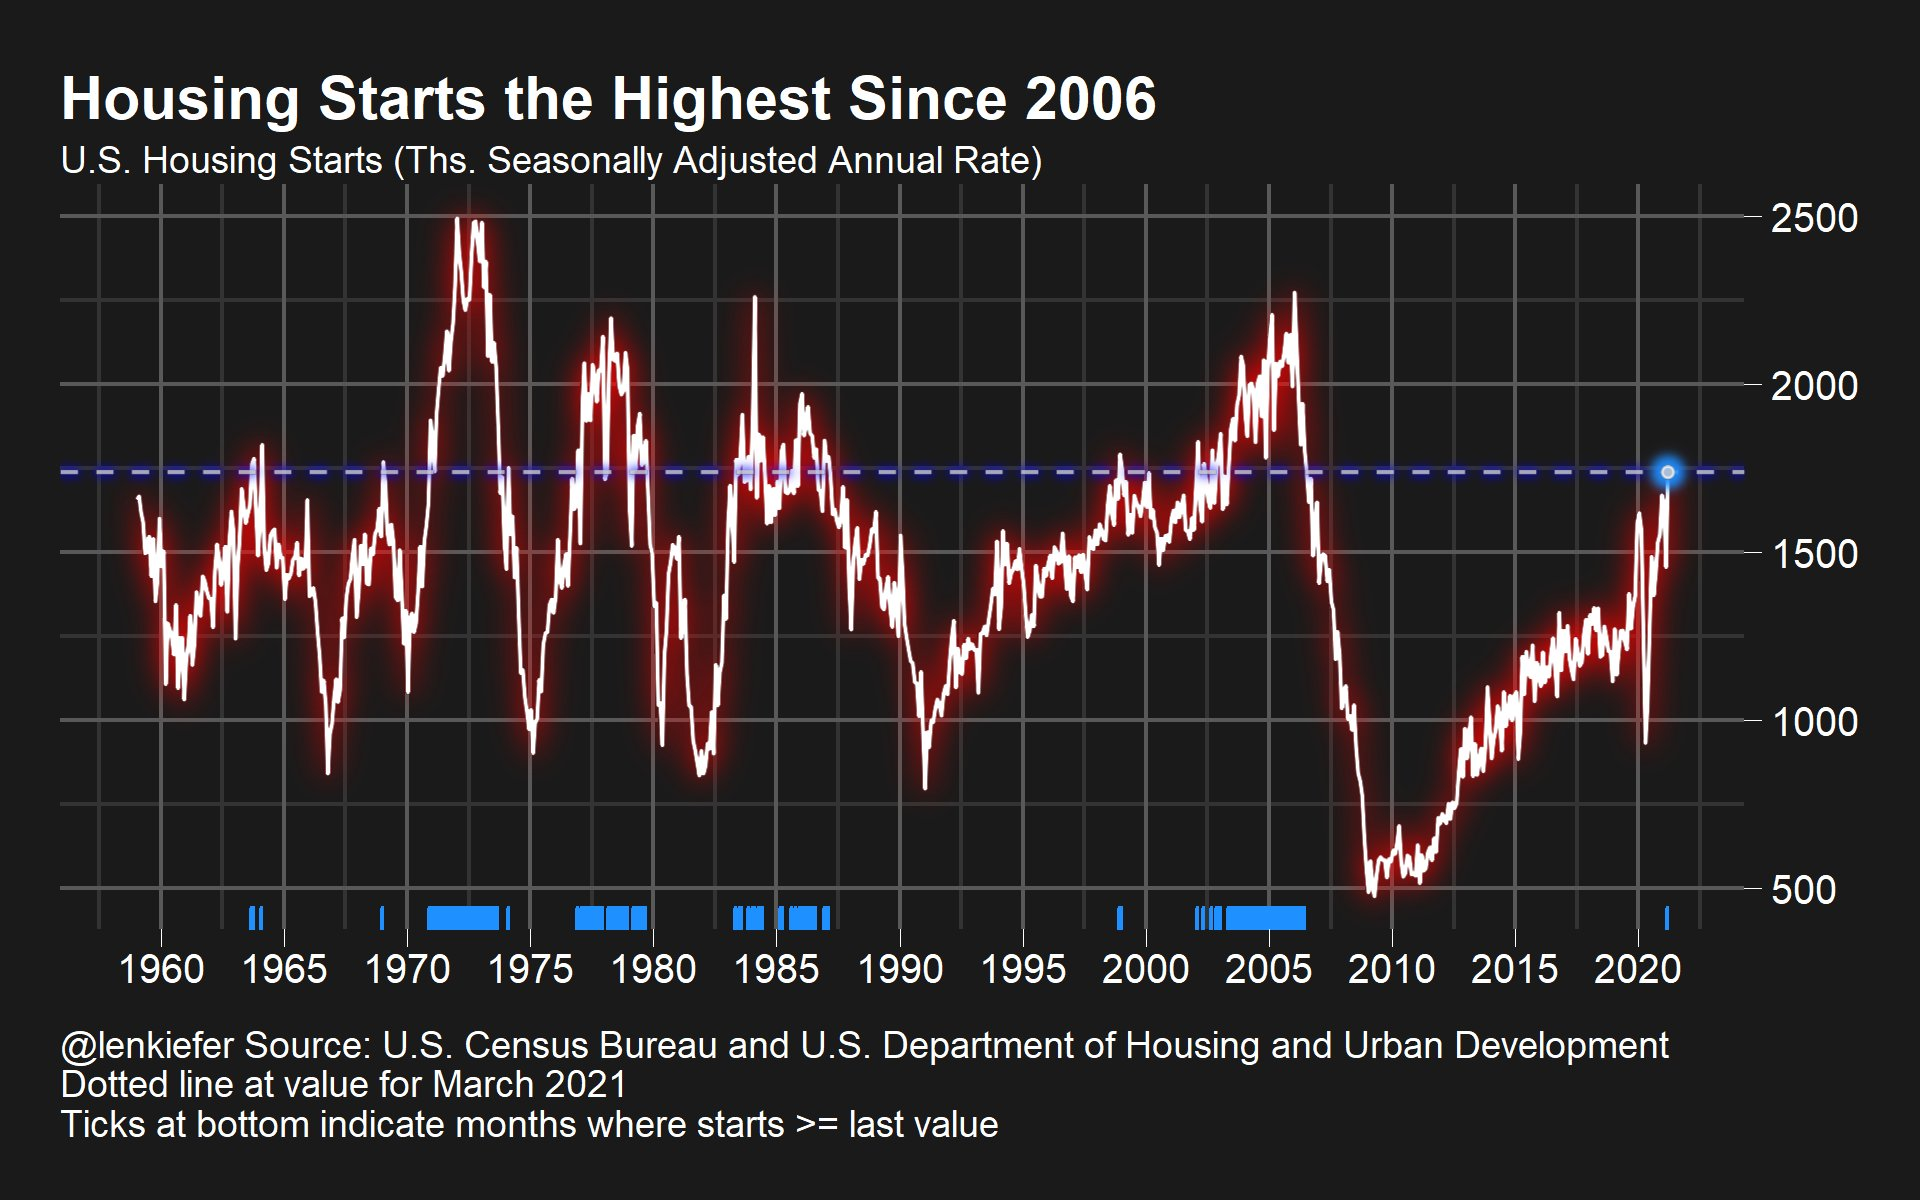 Time series US housing starts March 2021 highest since 2006